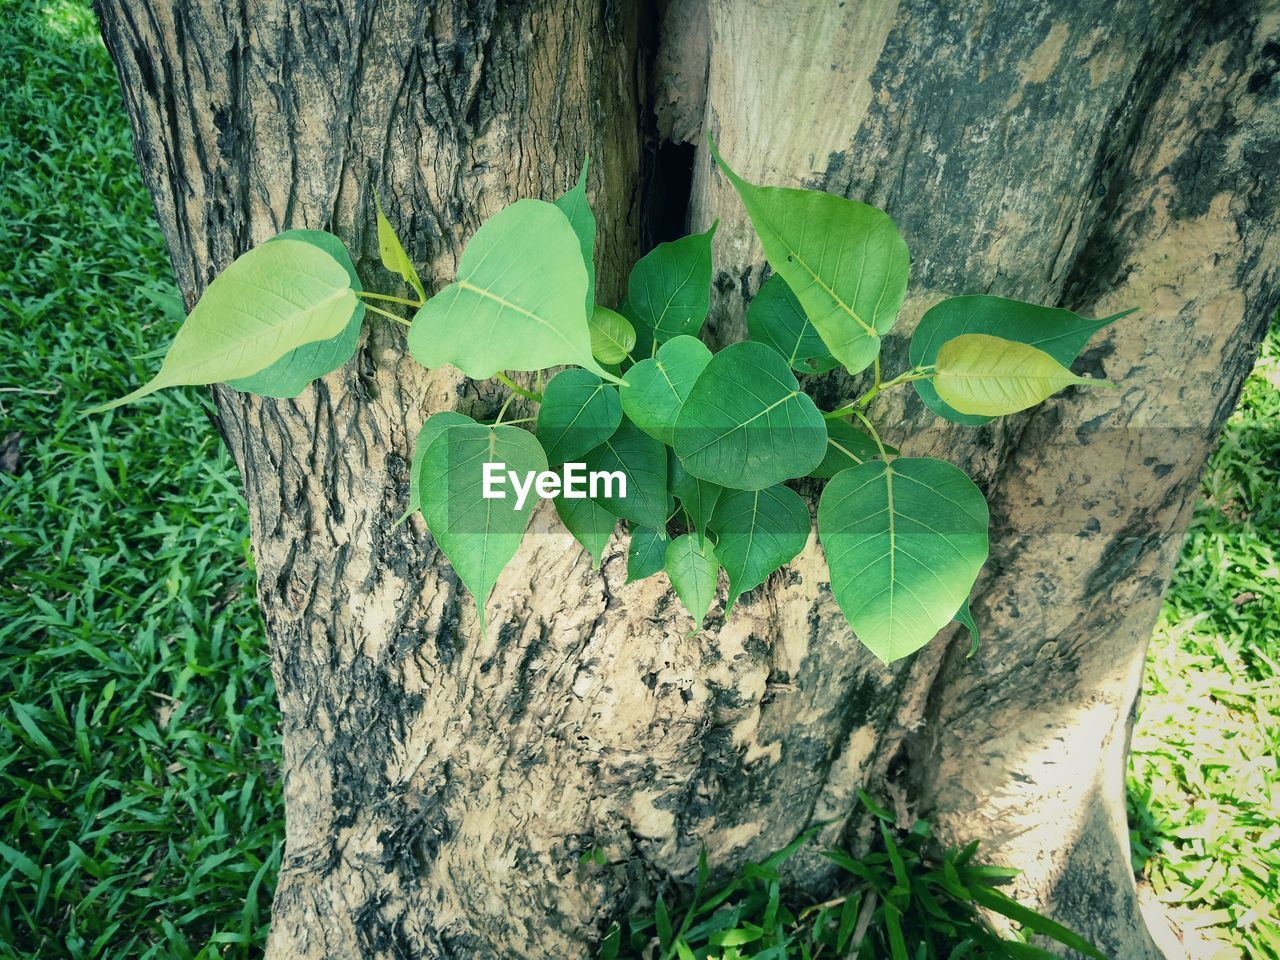 plant part, leaf, plant, green color, growth, nature, trunk, tree trunk, tree, day, close-up, high angle view, no people, wood - material, outdoors, beauty in nature, ivy, bark, land, creeper plant, clover, leaves